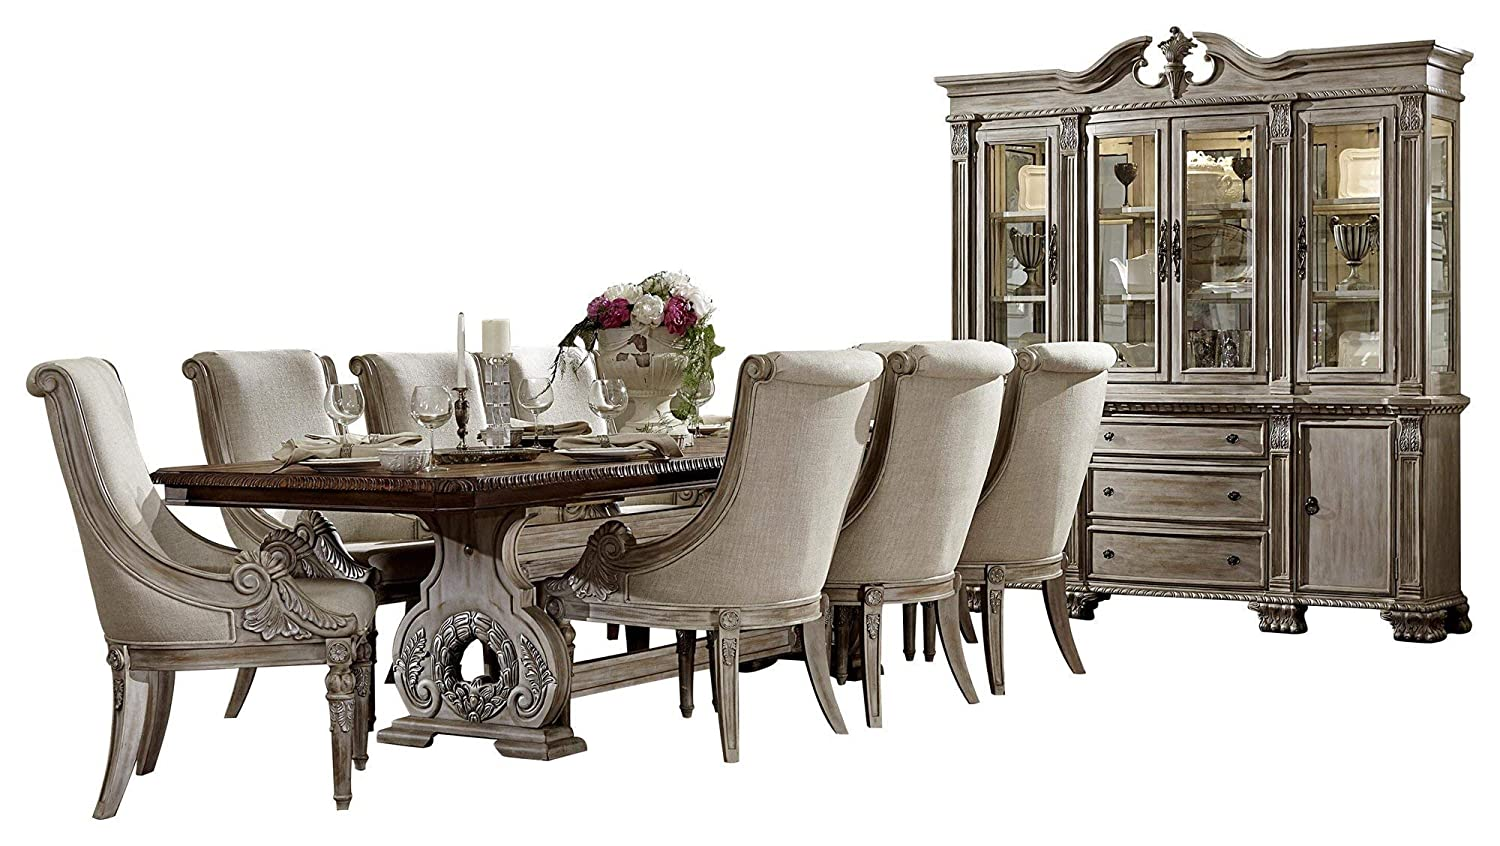 Chambord French Country 10PC Dining Set Table, 8 Chair, Buffet & Hutch in Antique White